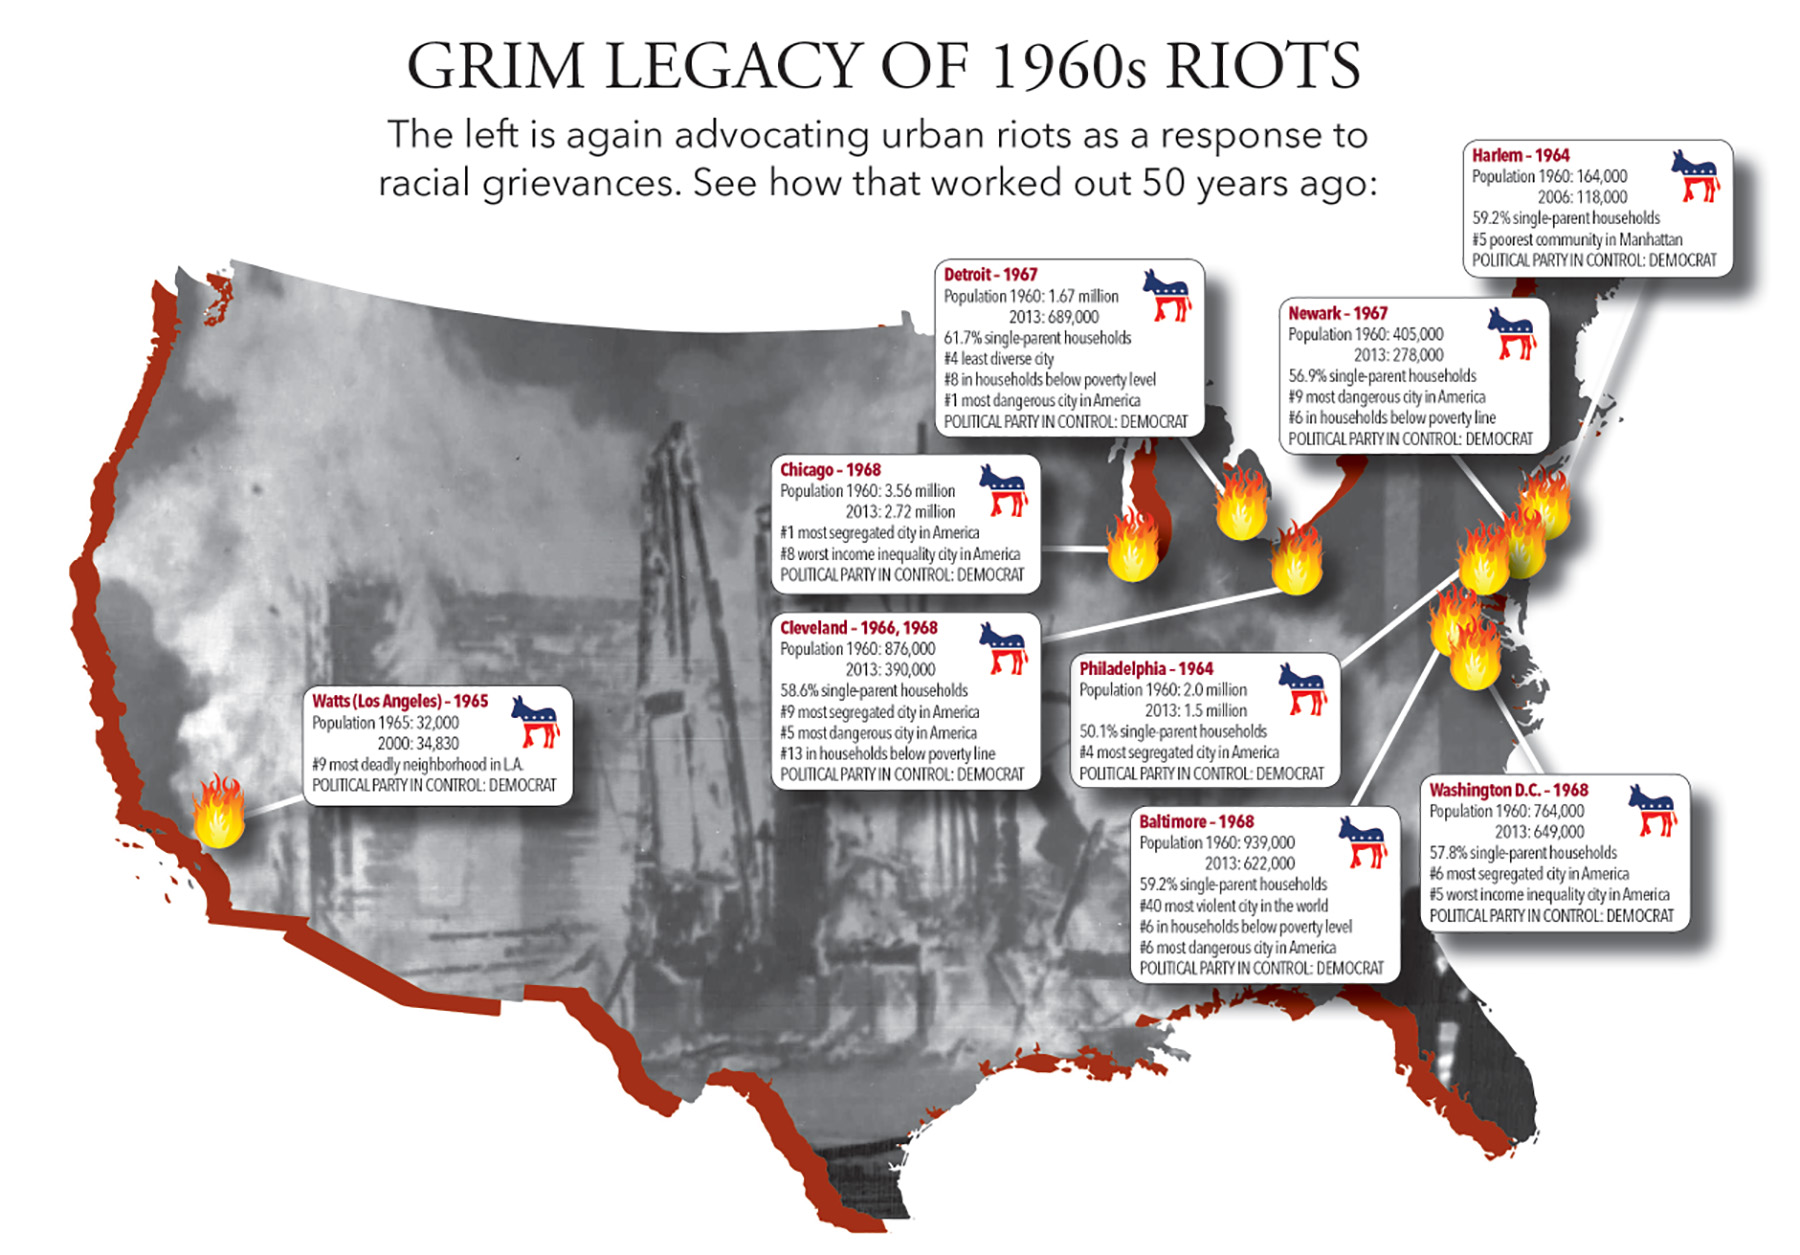 Grim Legacy of 1960s Riots